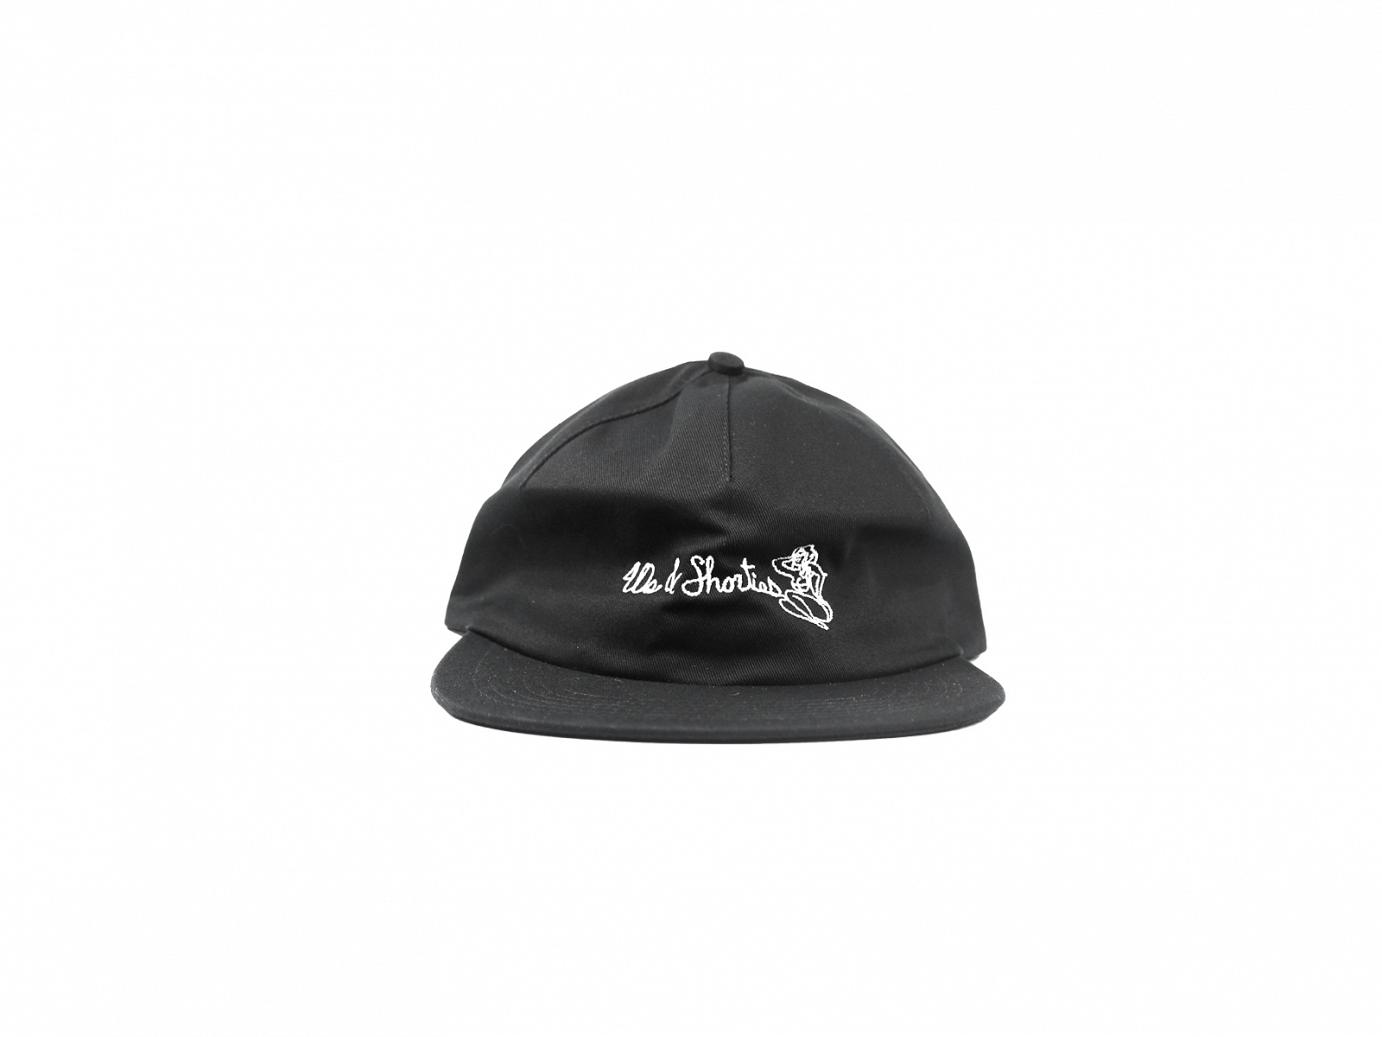 40S & SHORTIES SCRIBBLE GIRL 2 PANEL CAP